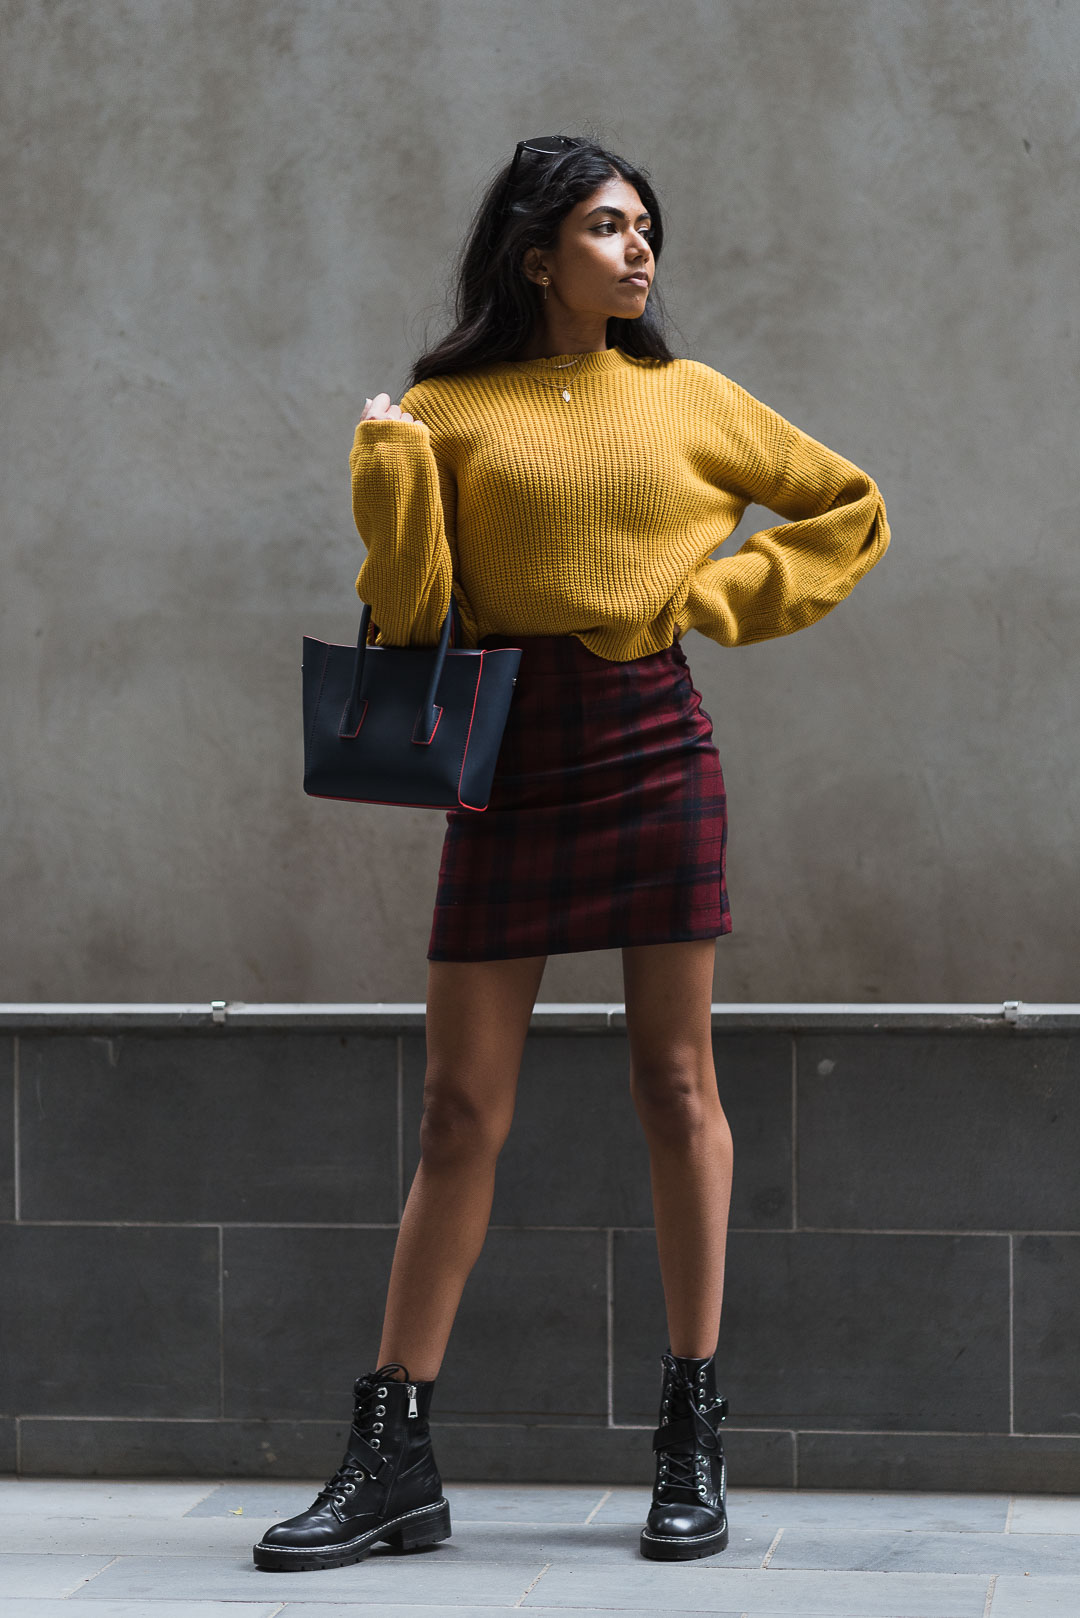 Mustard Jumper Outfit Full Length